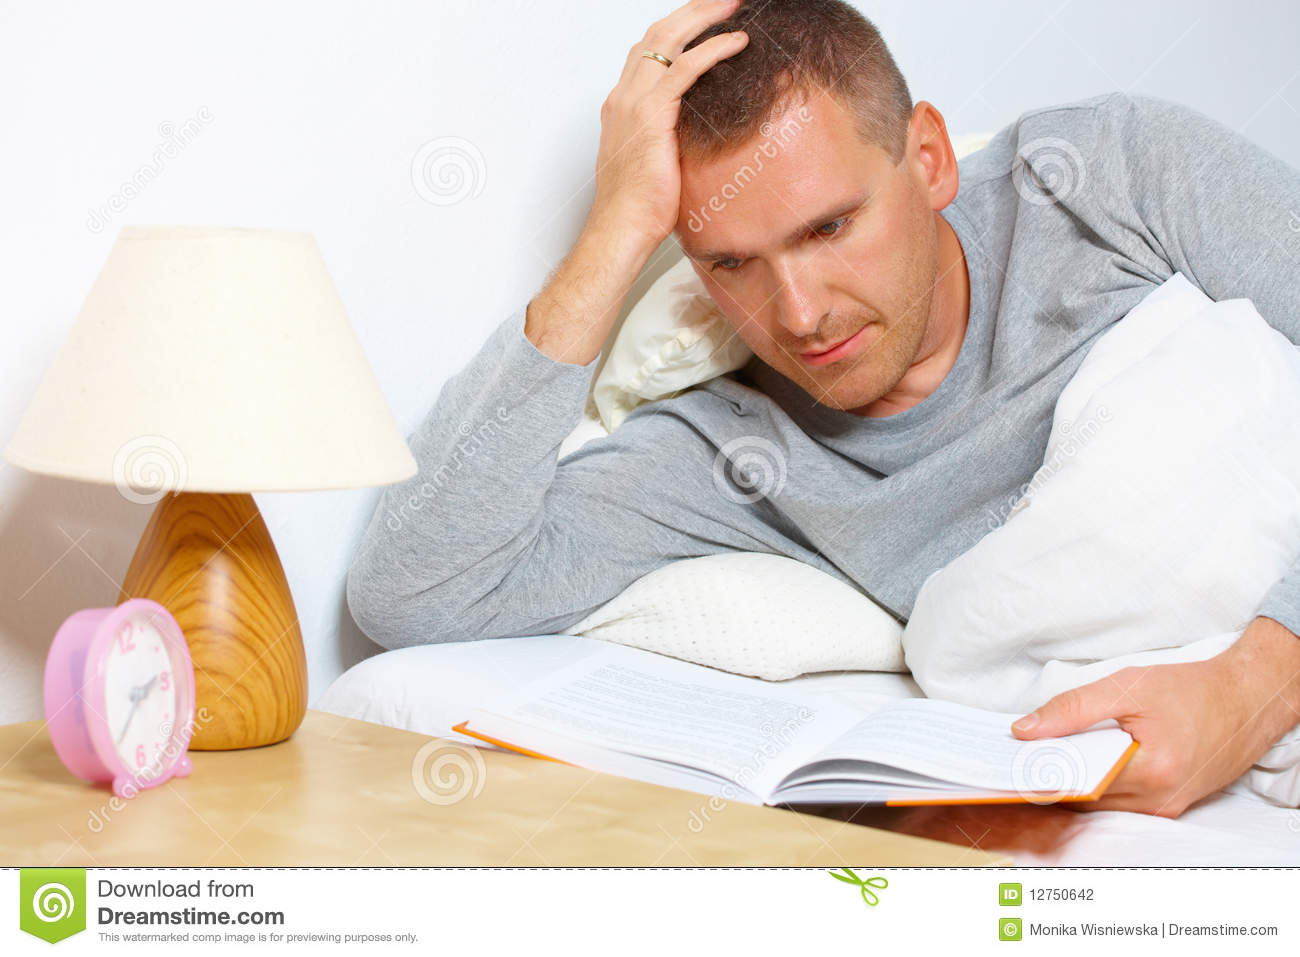 Sleepless Man Reading A Book Stock Photo - Image: 12750642